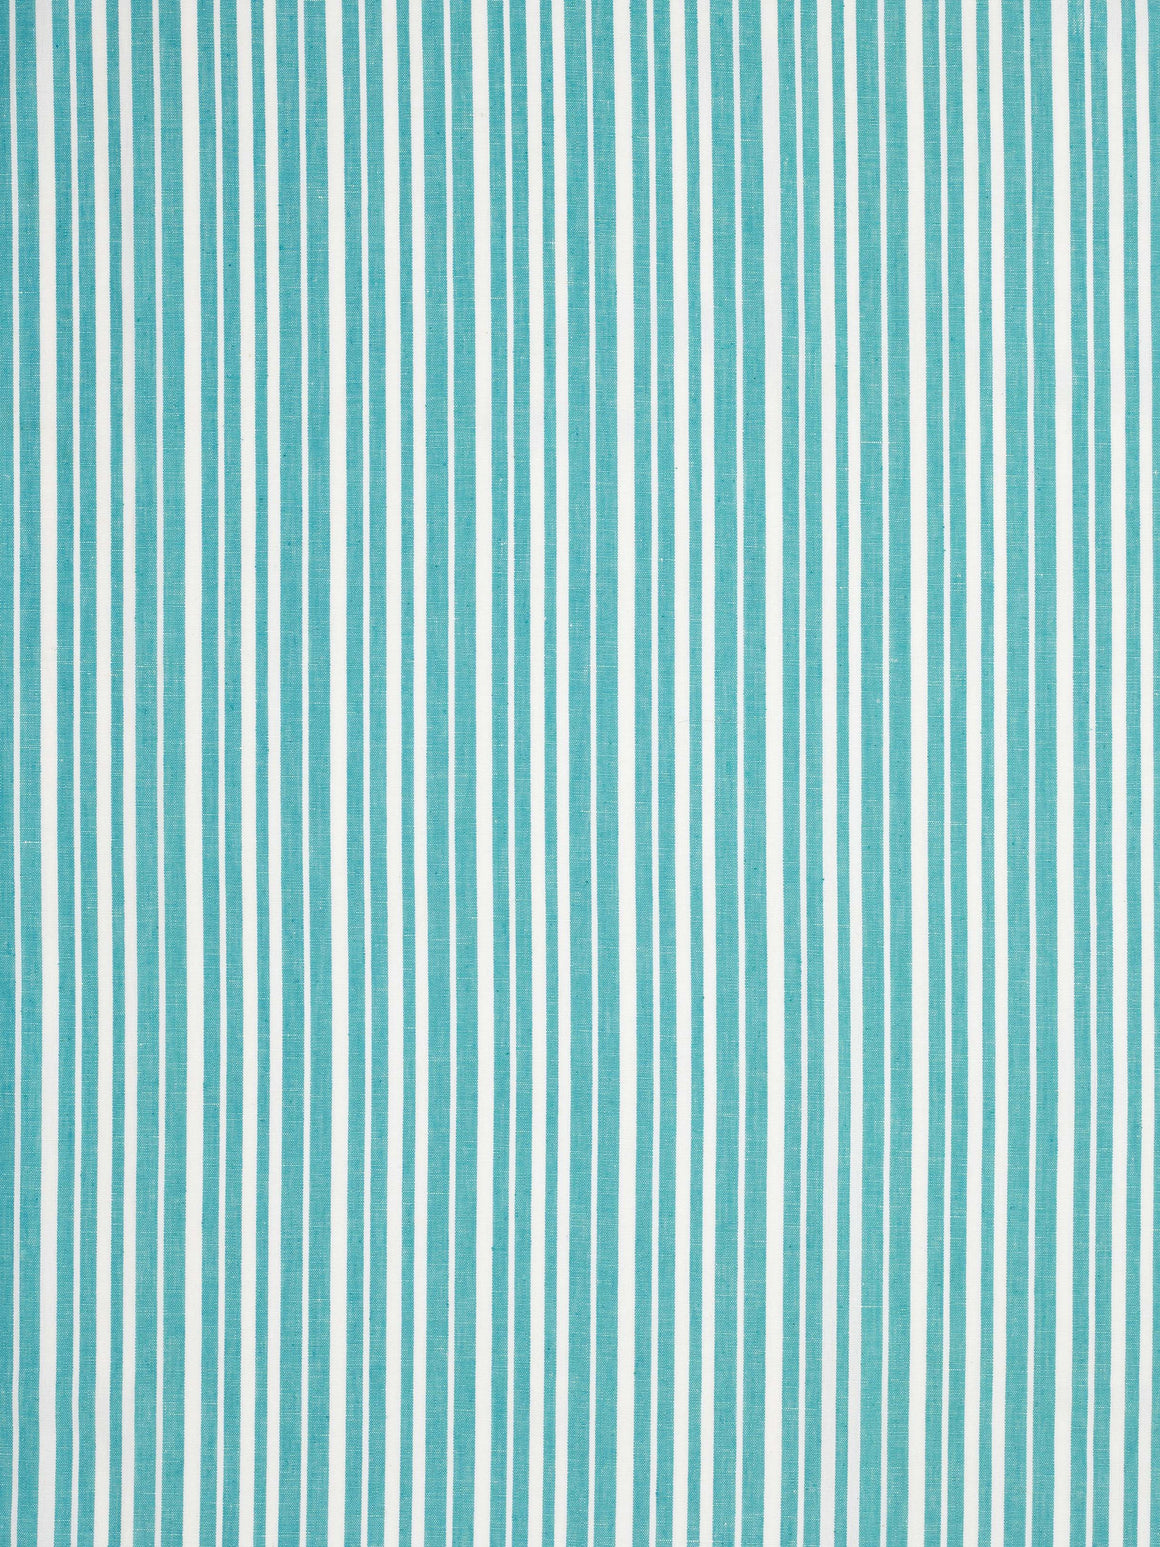 Palermo Ticking Stripe Cotton Linen Home Decor Fabric by the Meter or yard for curtains, blinds, upholstery in Pacific Turquoise Blue ships from Canada (USA)